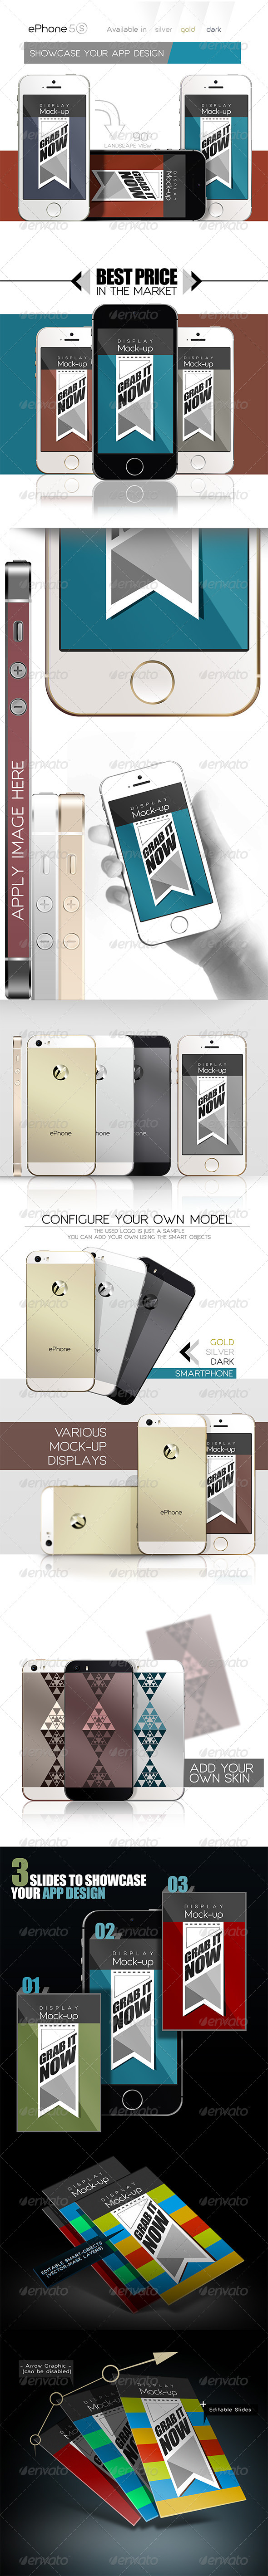 ePhone 5s MockUps Display Skin 3 colors Front&back